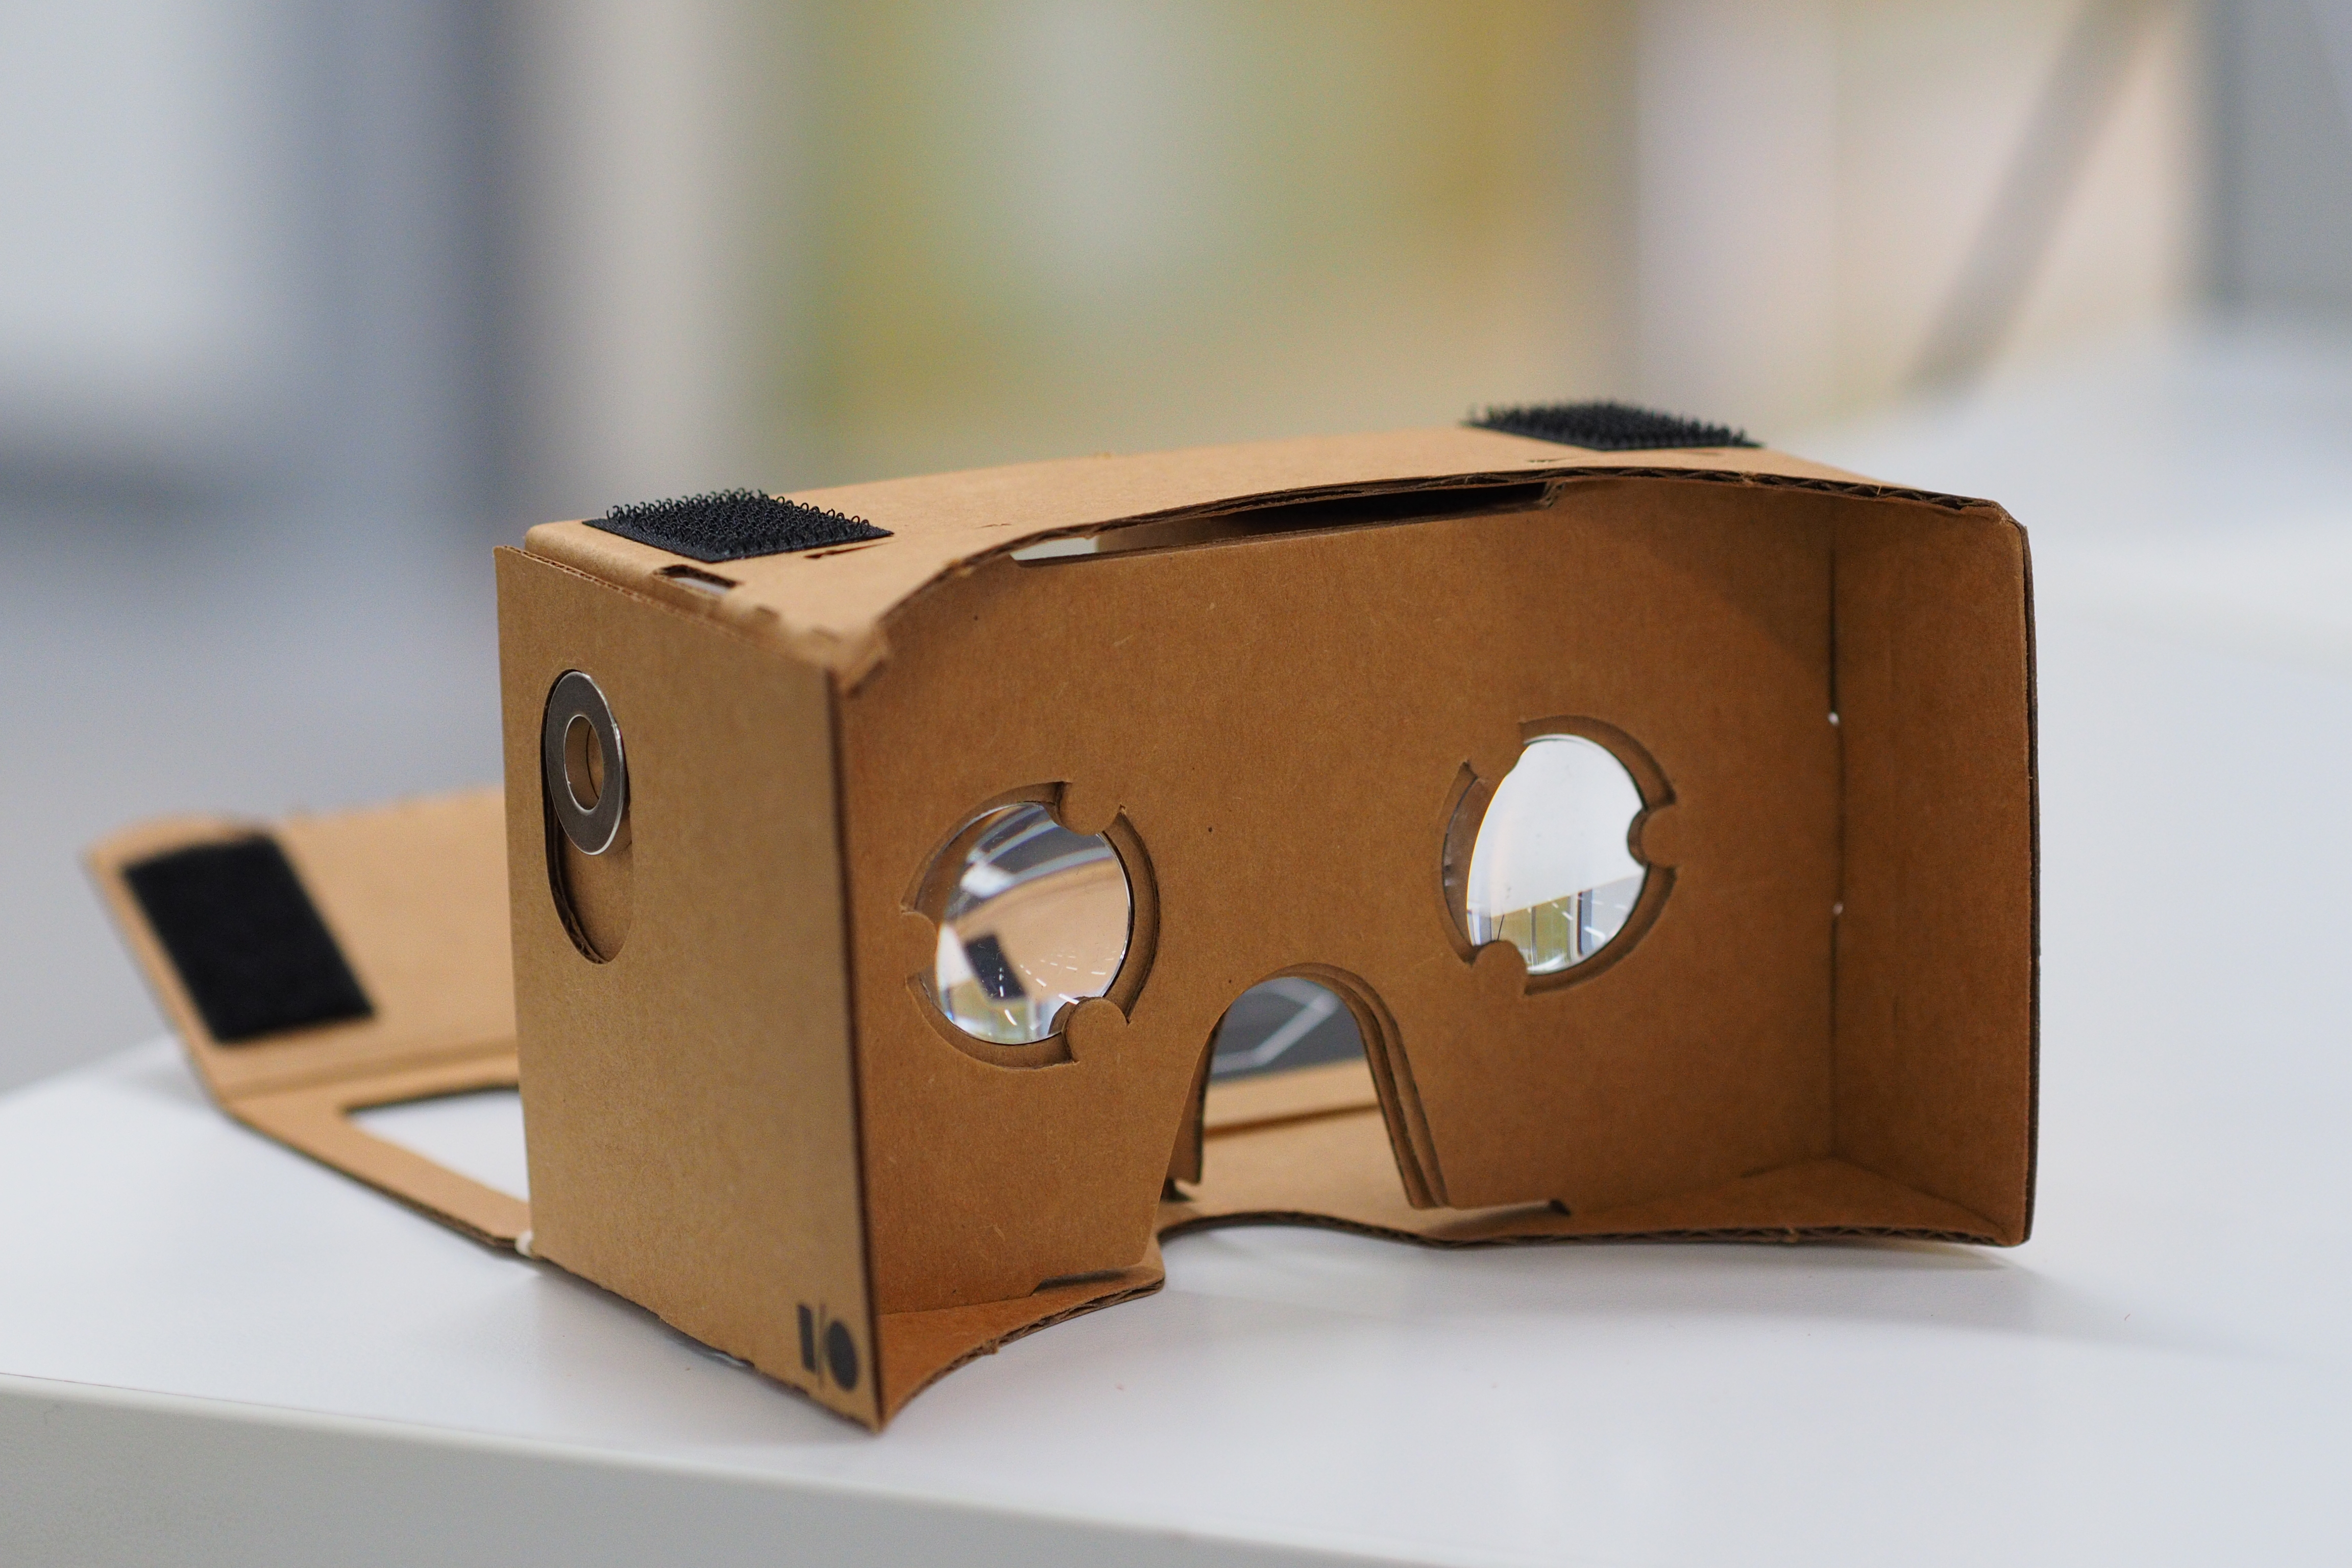 Virtual Reality In Latin America Introducing The Audience To A New Visval Echo Khaki Way Of Seeing World Knight Center For Journalism Americas